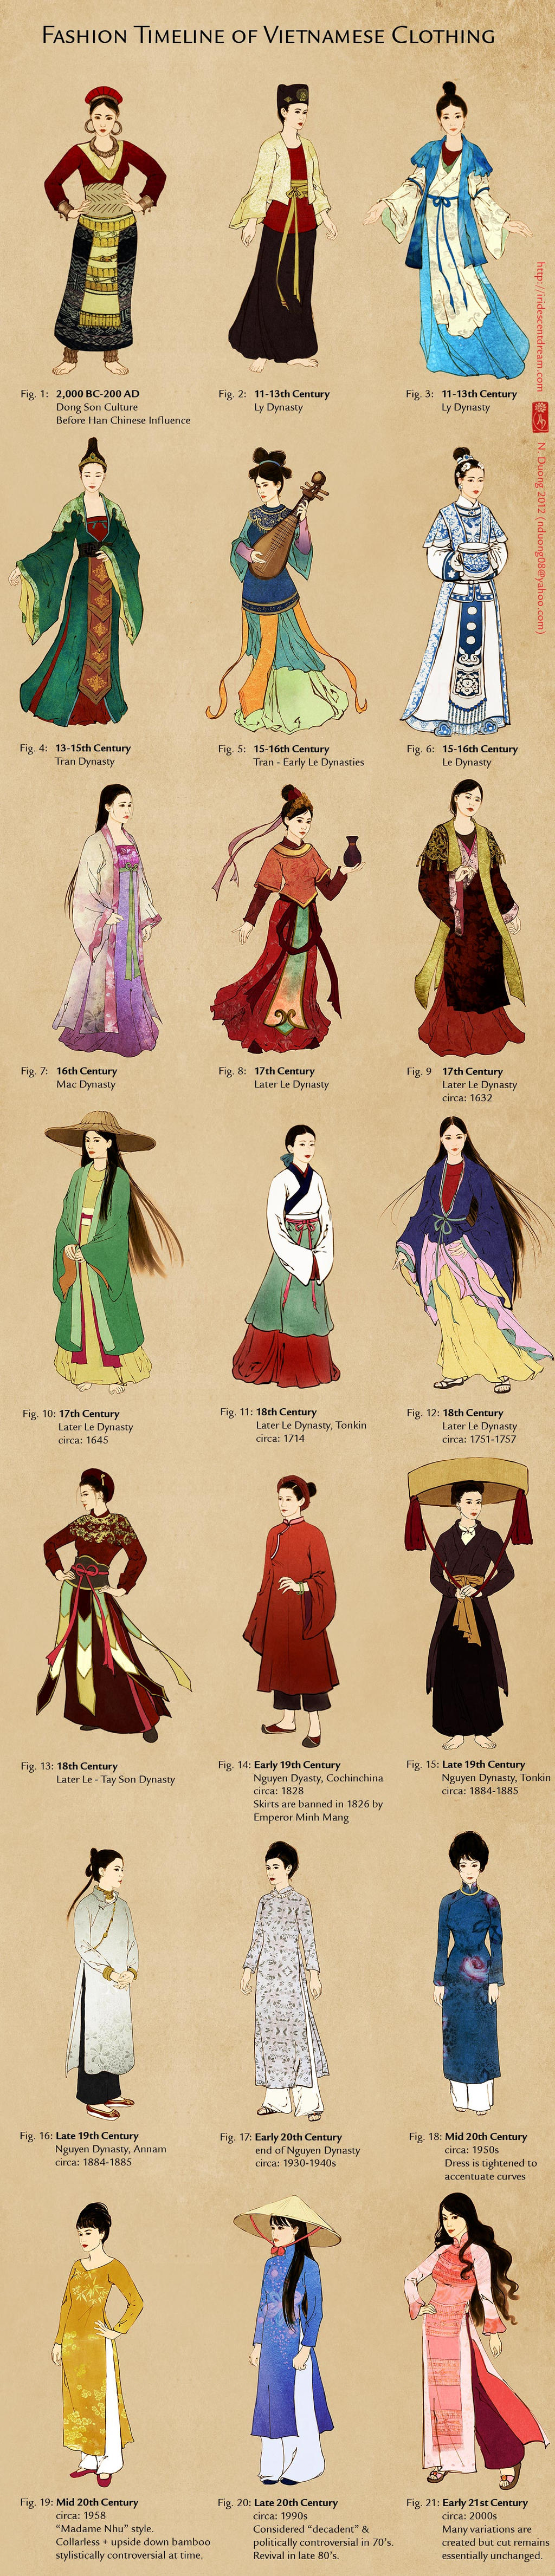 Timeline Of Mens Victorian Clothing